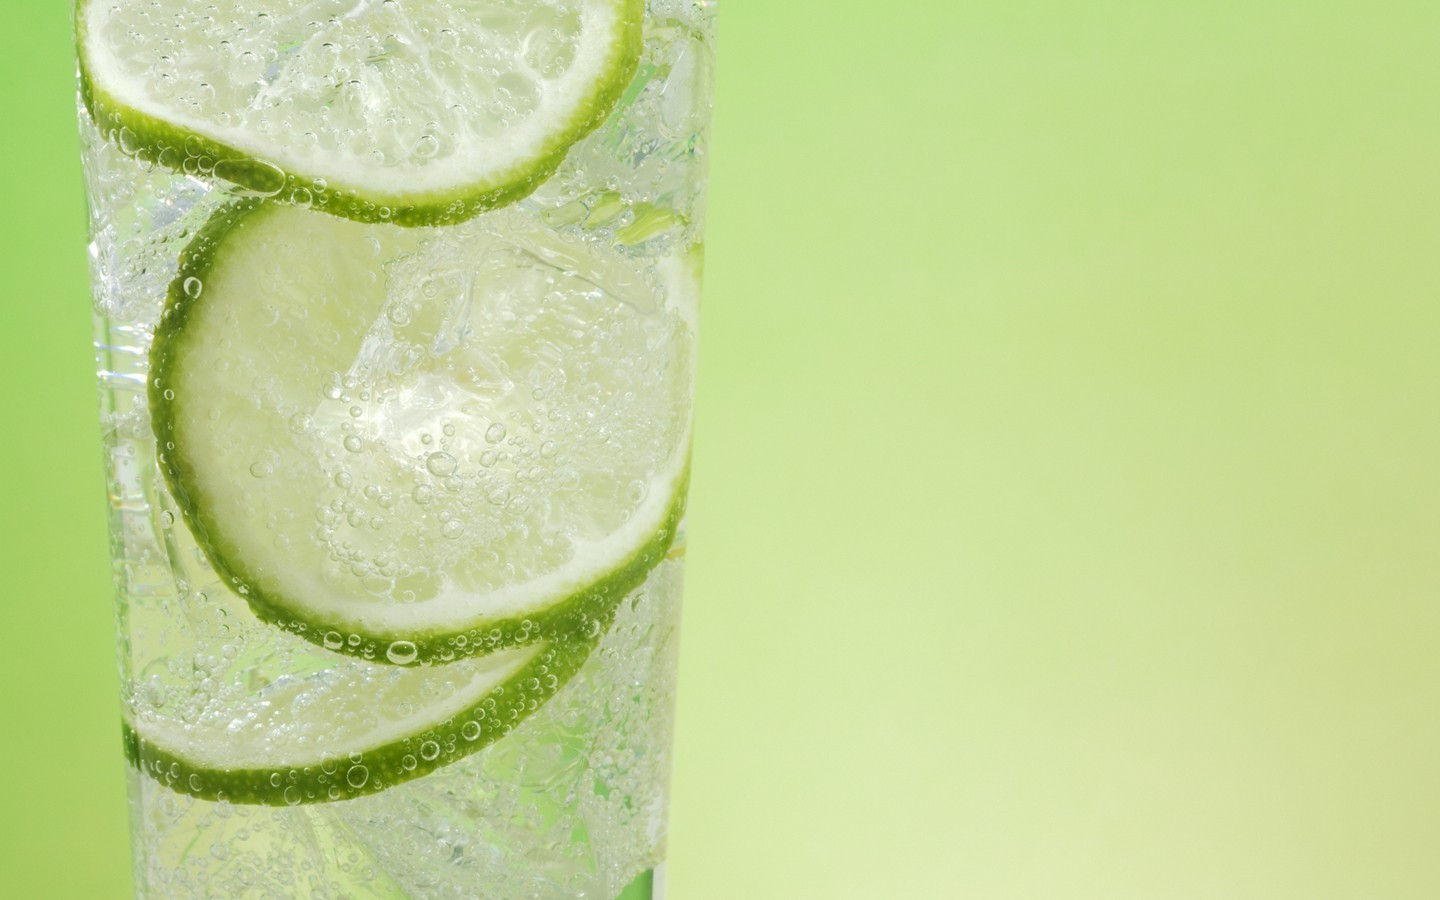 Green fruits limes cocktail HD Wallpaper